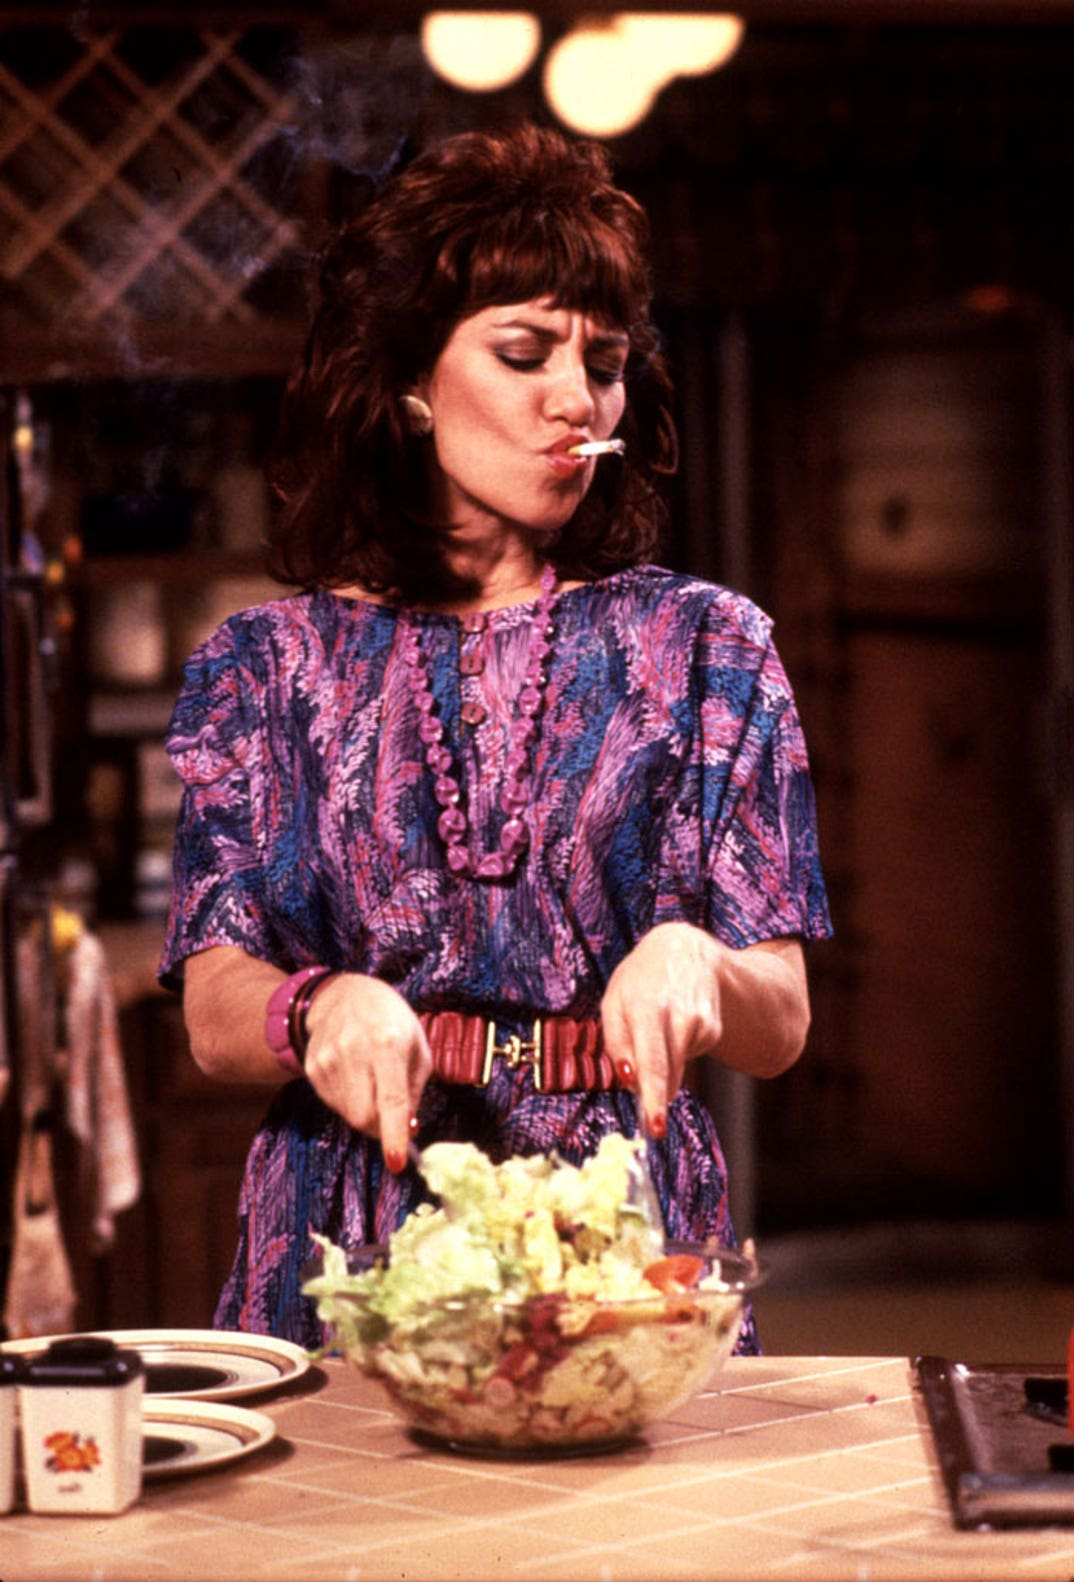 Katey Sagal played the role of Peggy Bundy on 'Married... with Children'